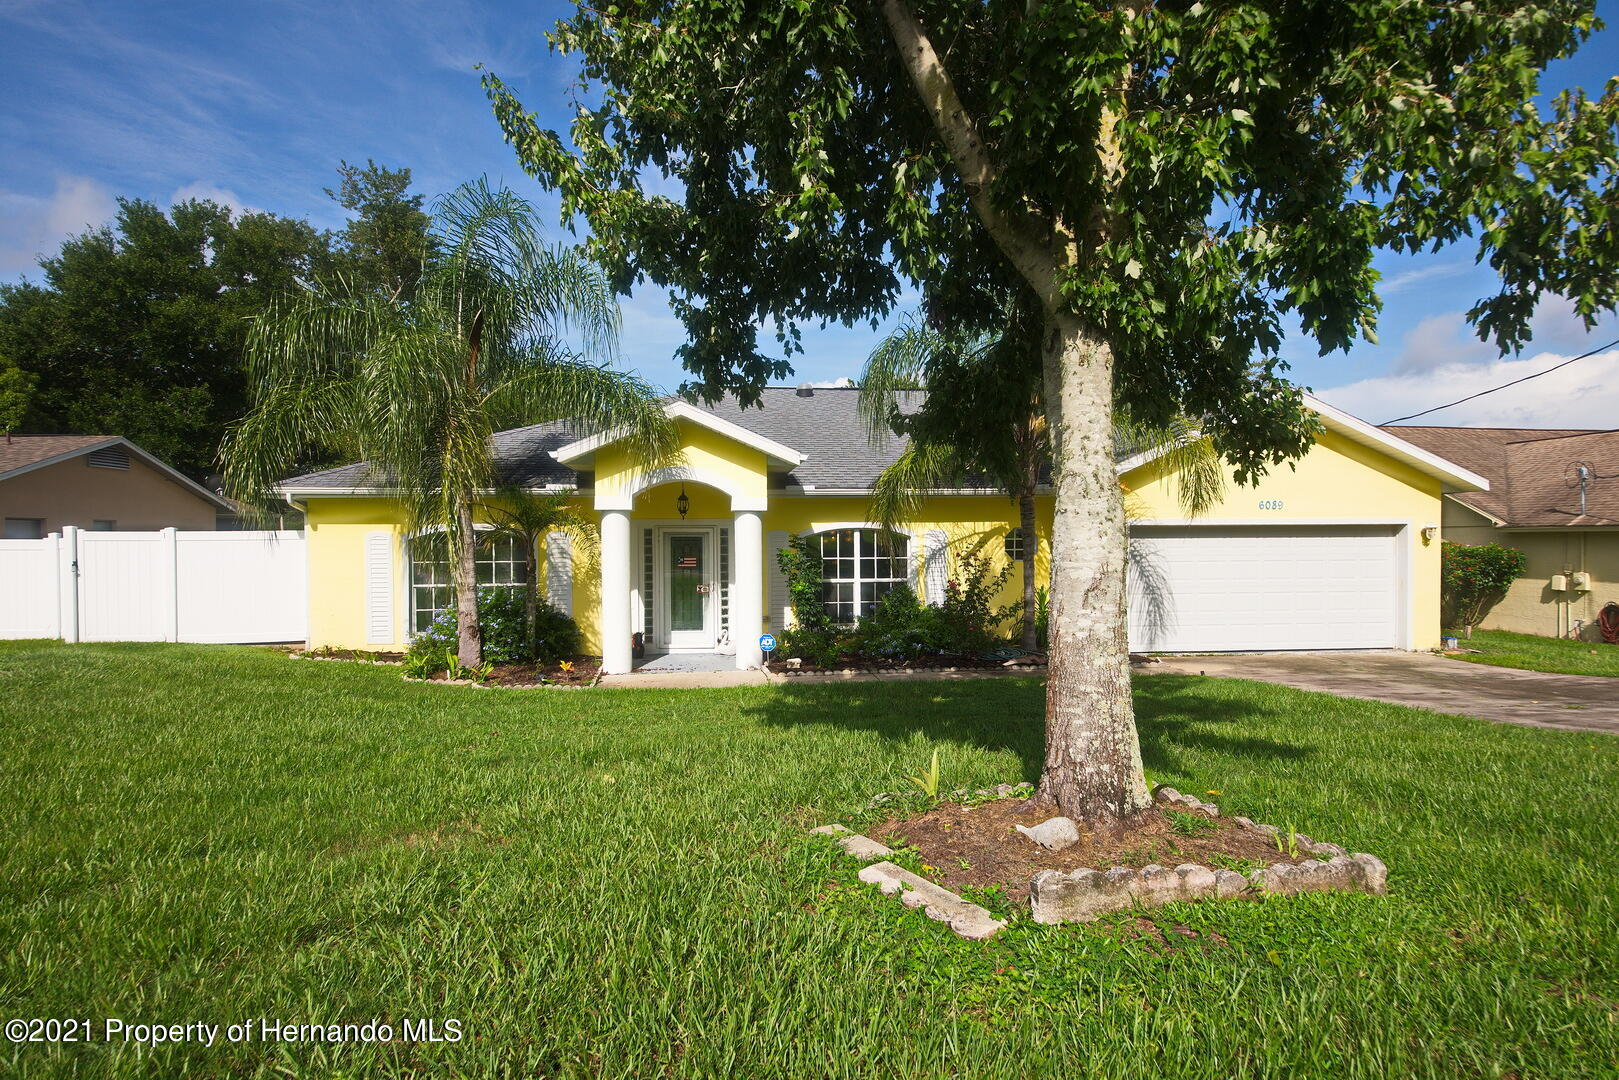 Details for 6089 Mountain Way Avenue, Spring Hill, FL 34608